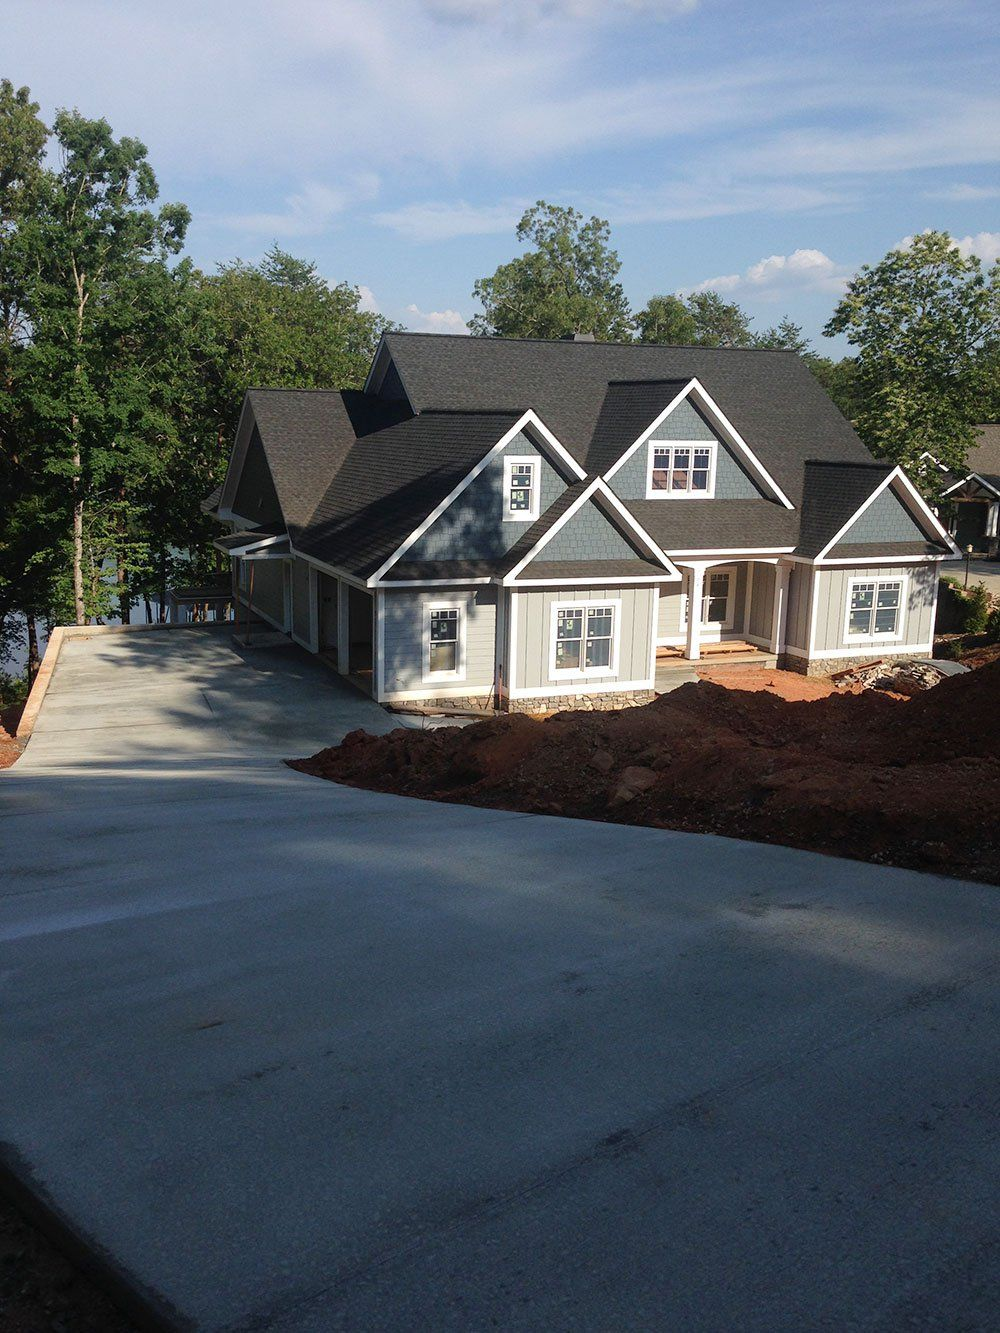 Craftsman Style Lake House Plan With Walkout Basement Craftsman House Plans Lake House Plans Basement House Plans